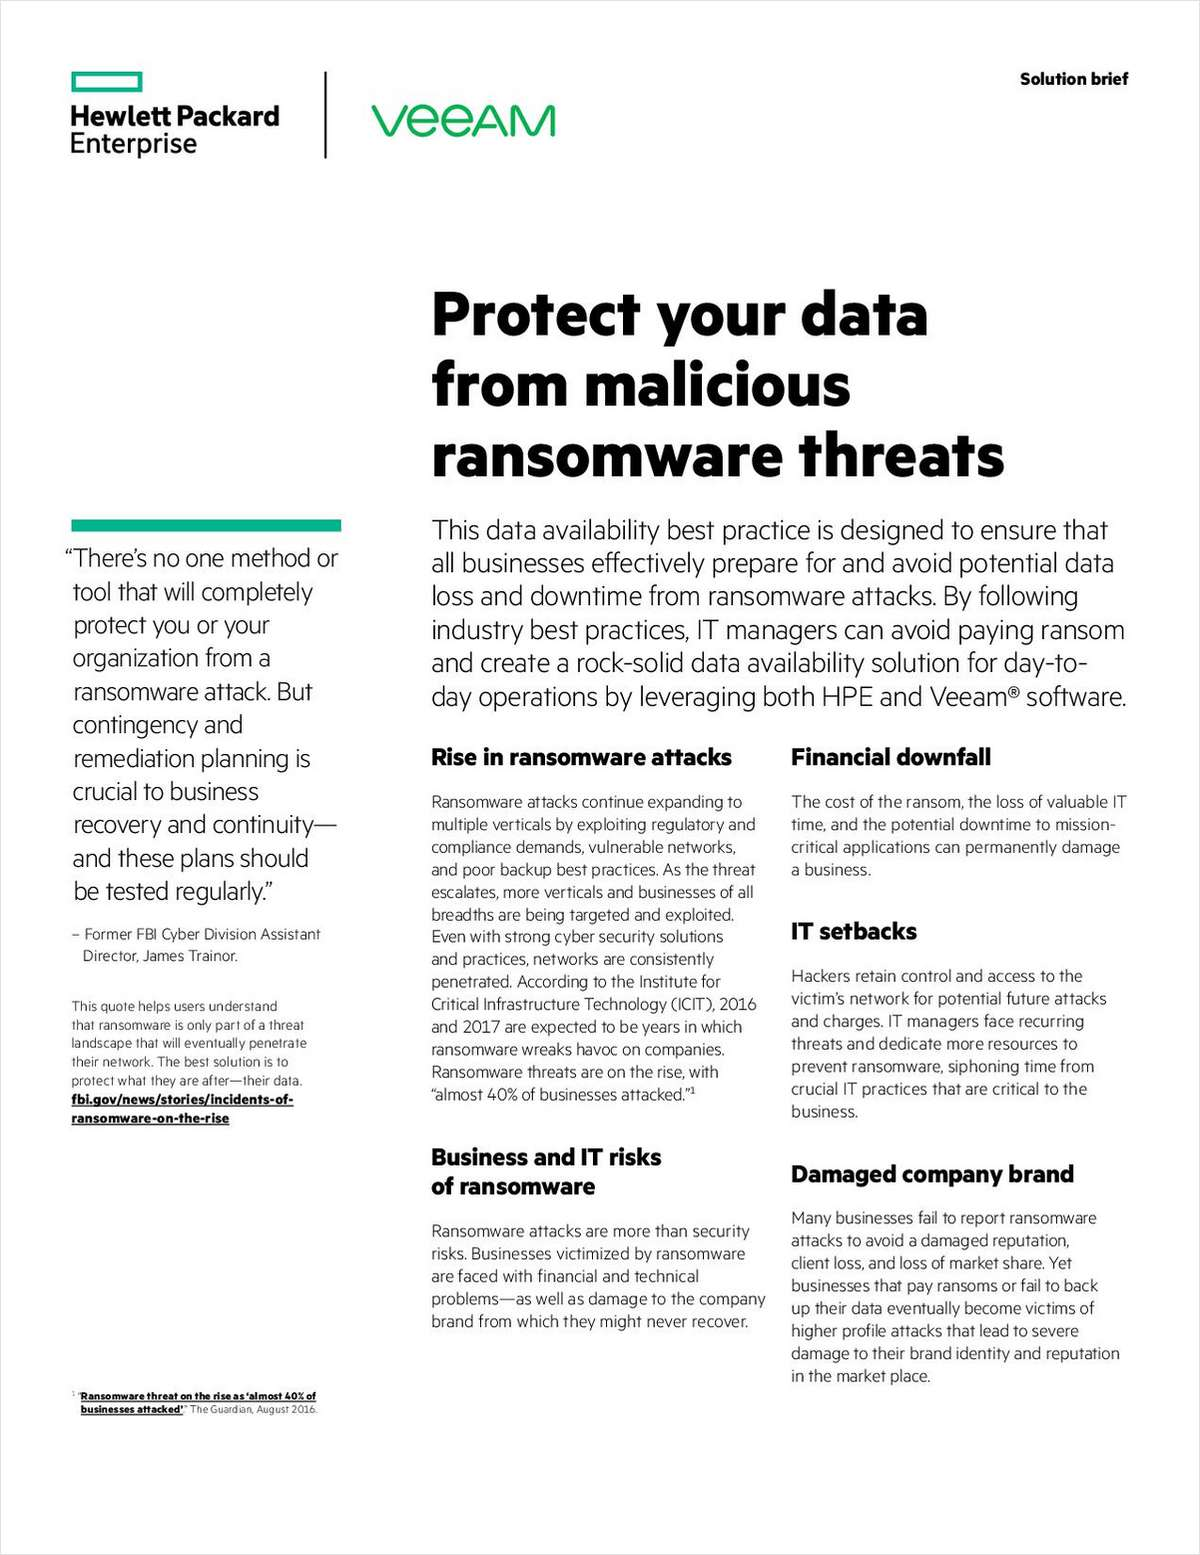 Protect Your Data from Malicious Ransomeware Threats